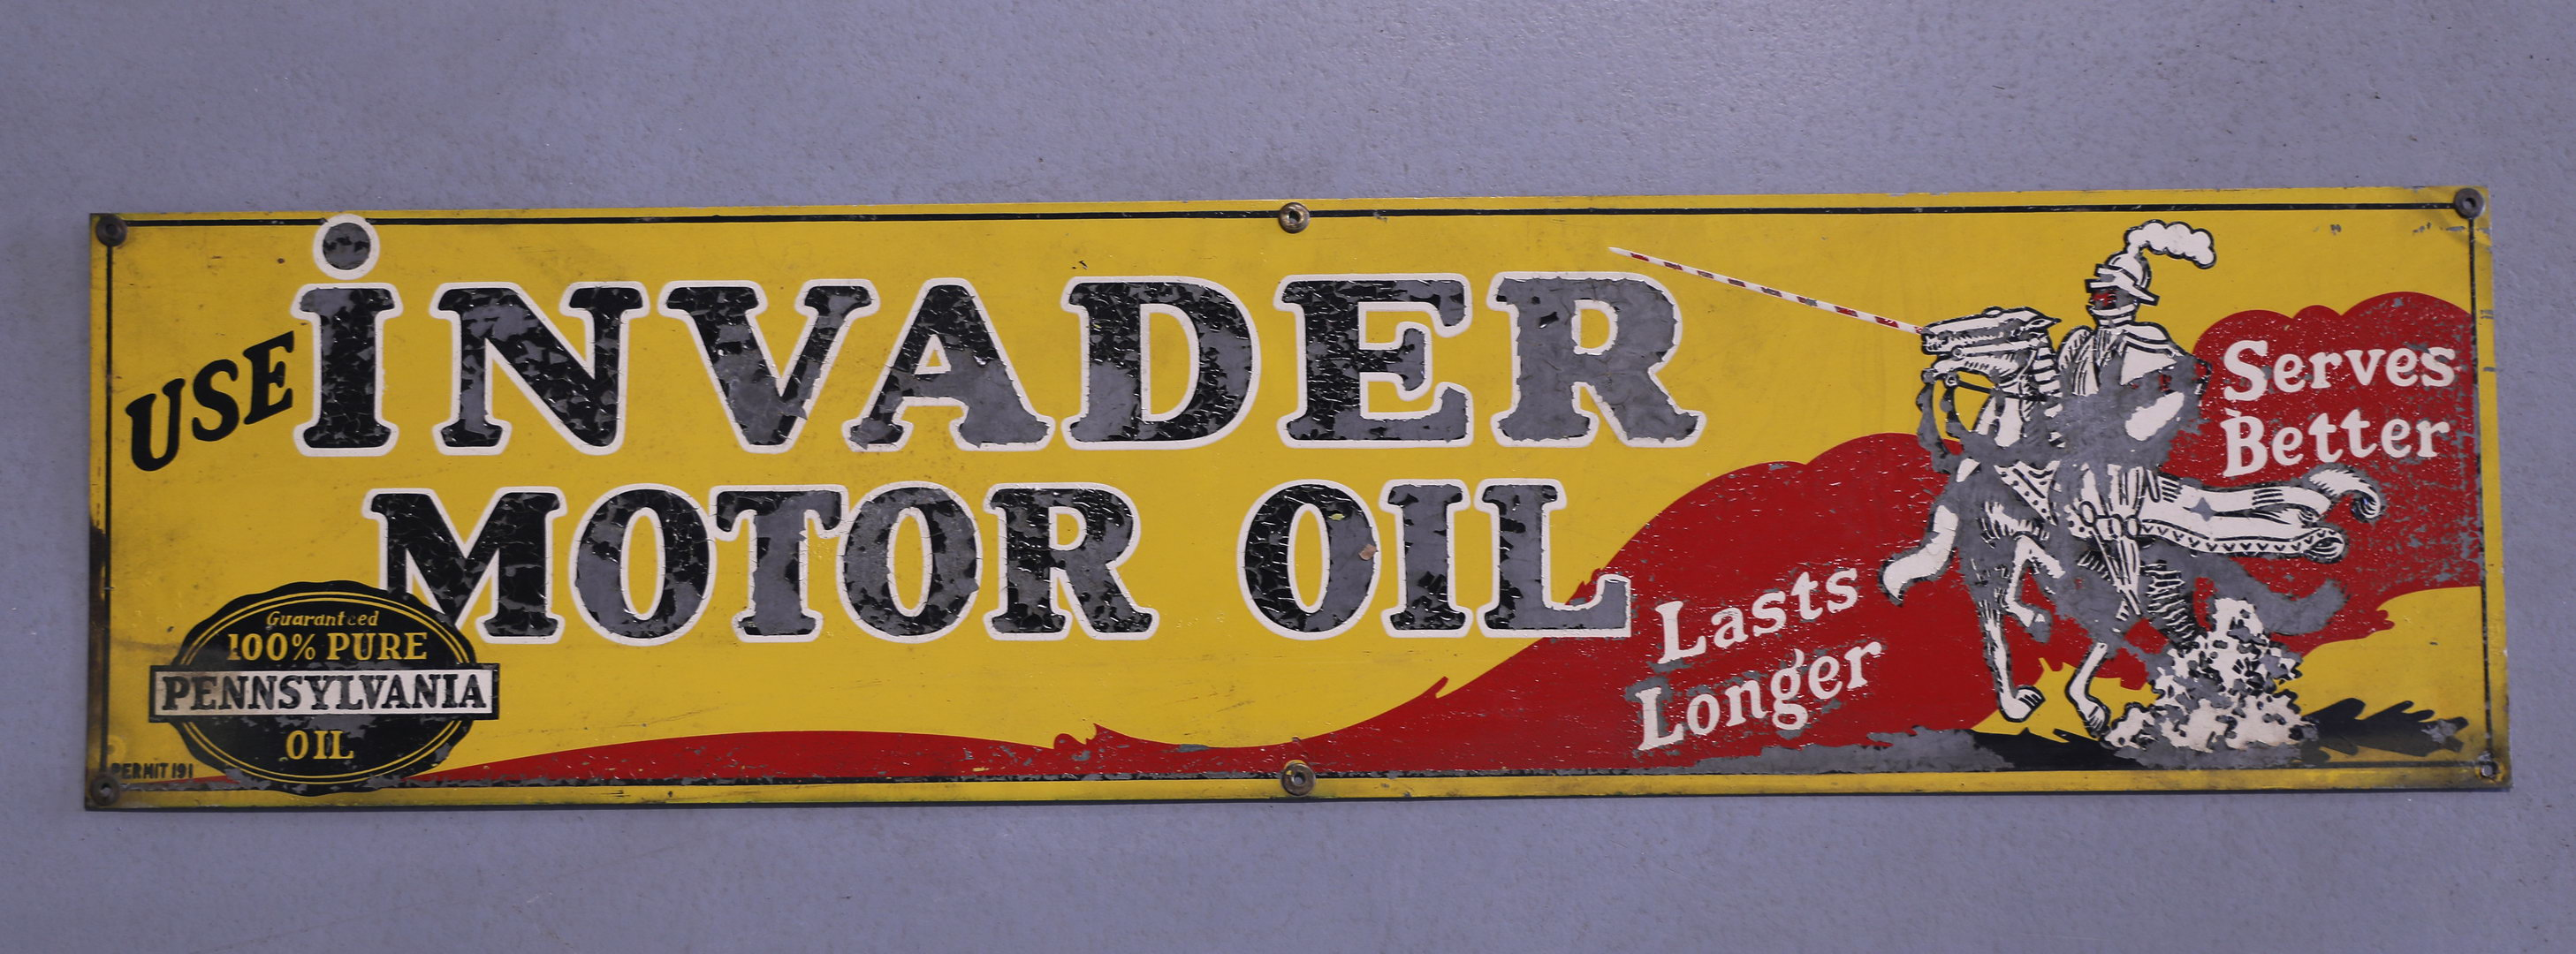 Invader Motor Oil Pennsylvania Oil Thick Tin Sign